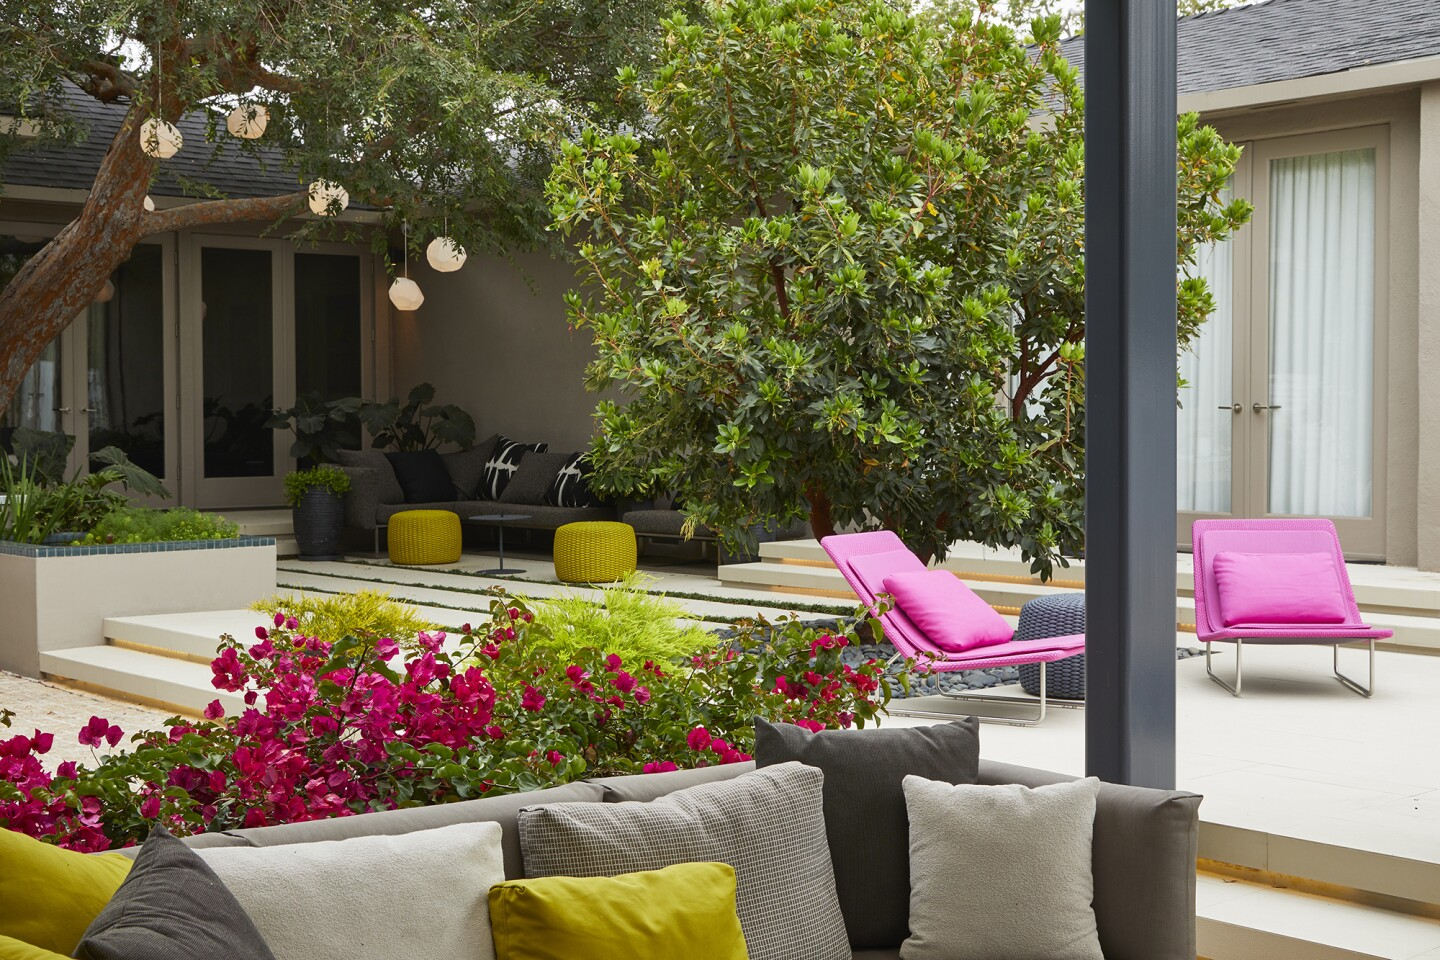 The plant palette is composed of varied textures and shades of green, accented by richly colored bark. Bougainvillea and chairs, both magenta, provide a color pop in the back yard. (Furniture selected by Laurie Raskin of Laurie Raskin Design)